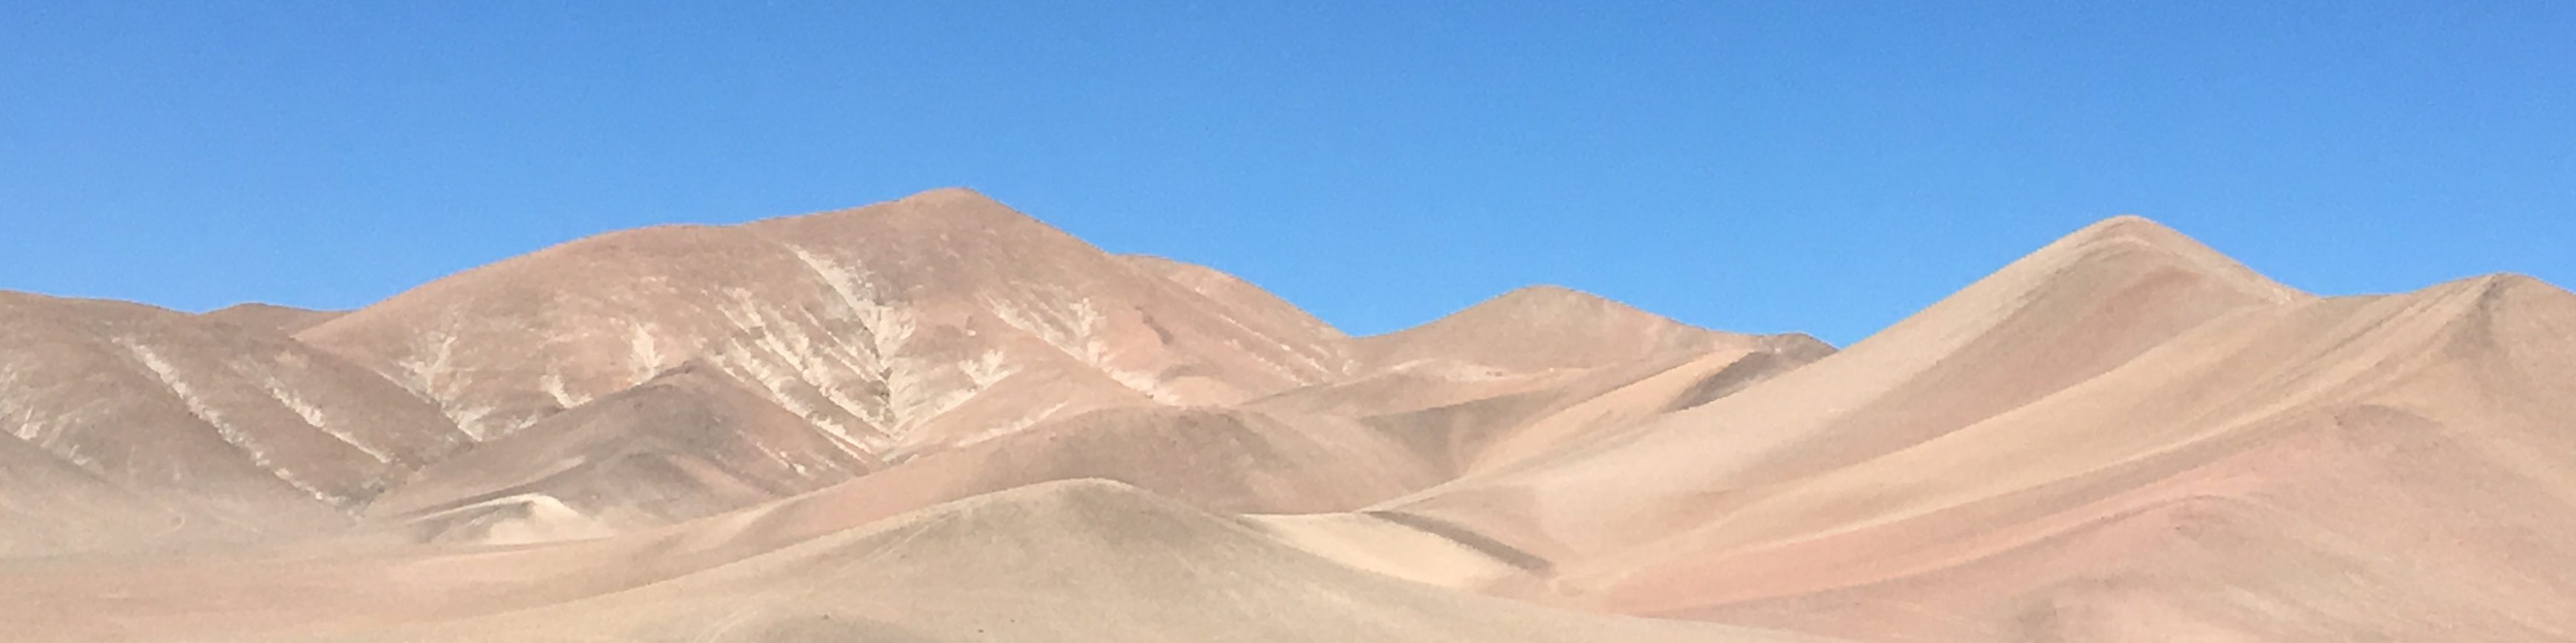 Atacama Dessert, a unique place for Astronomy but also for Mining